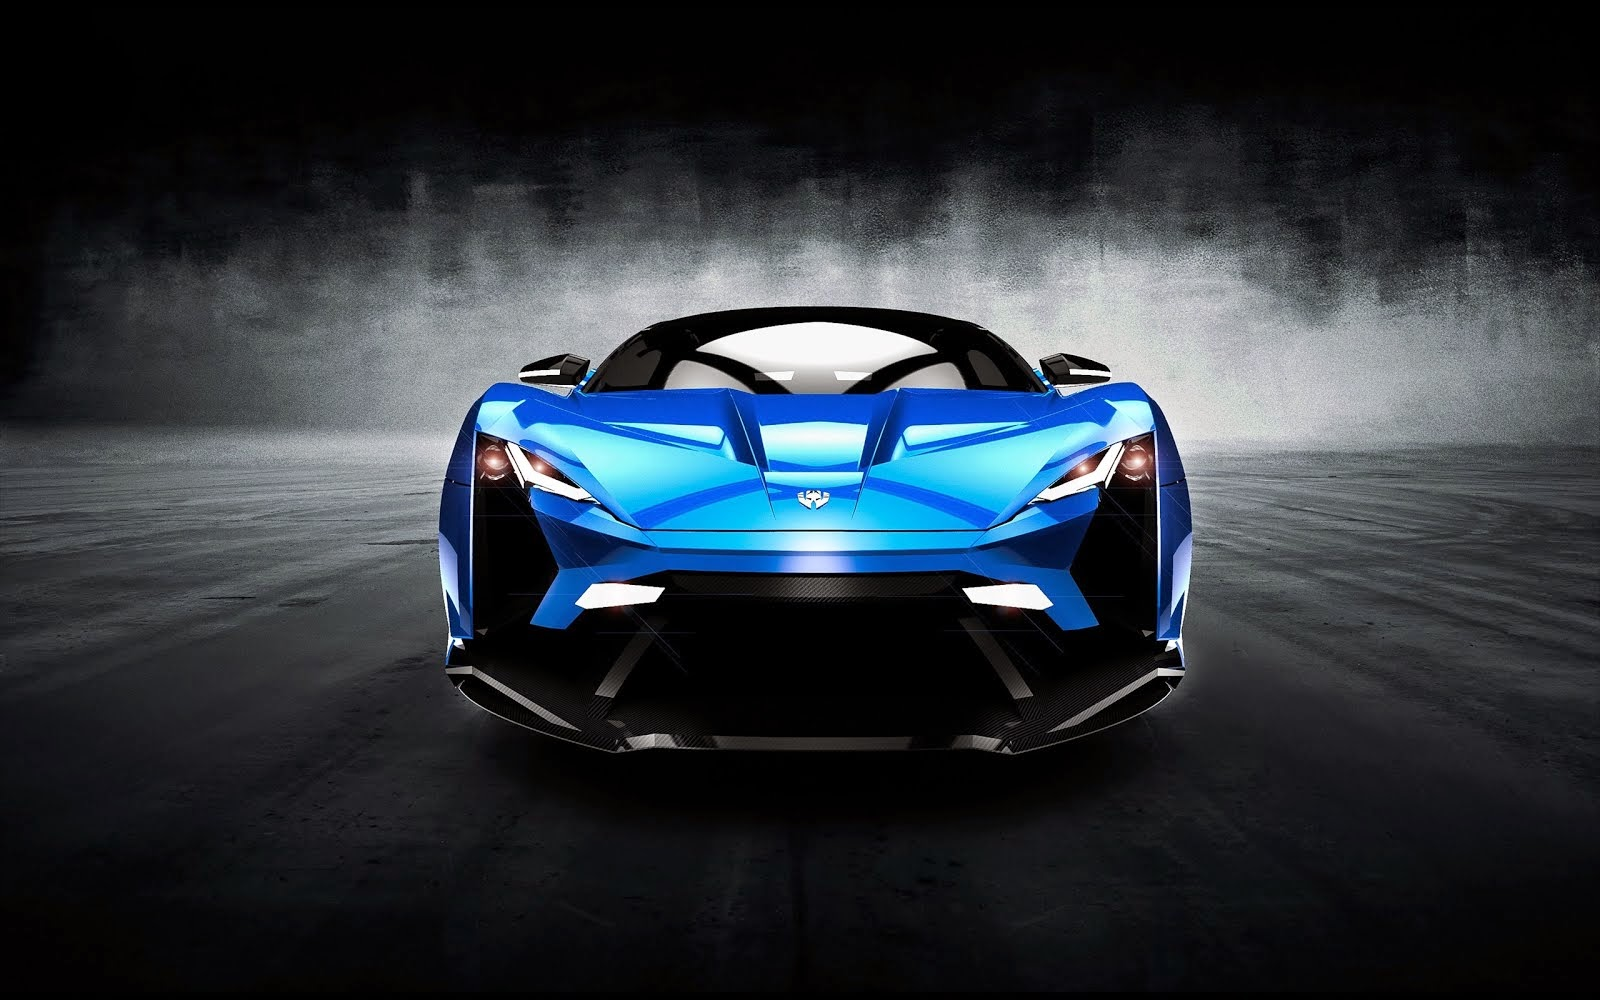 Lykan Hypersport HD Wallpapers  W Motors Car Background Pictures  Download Free High